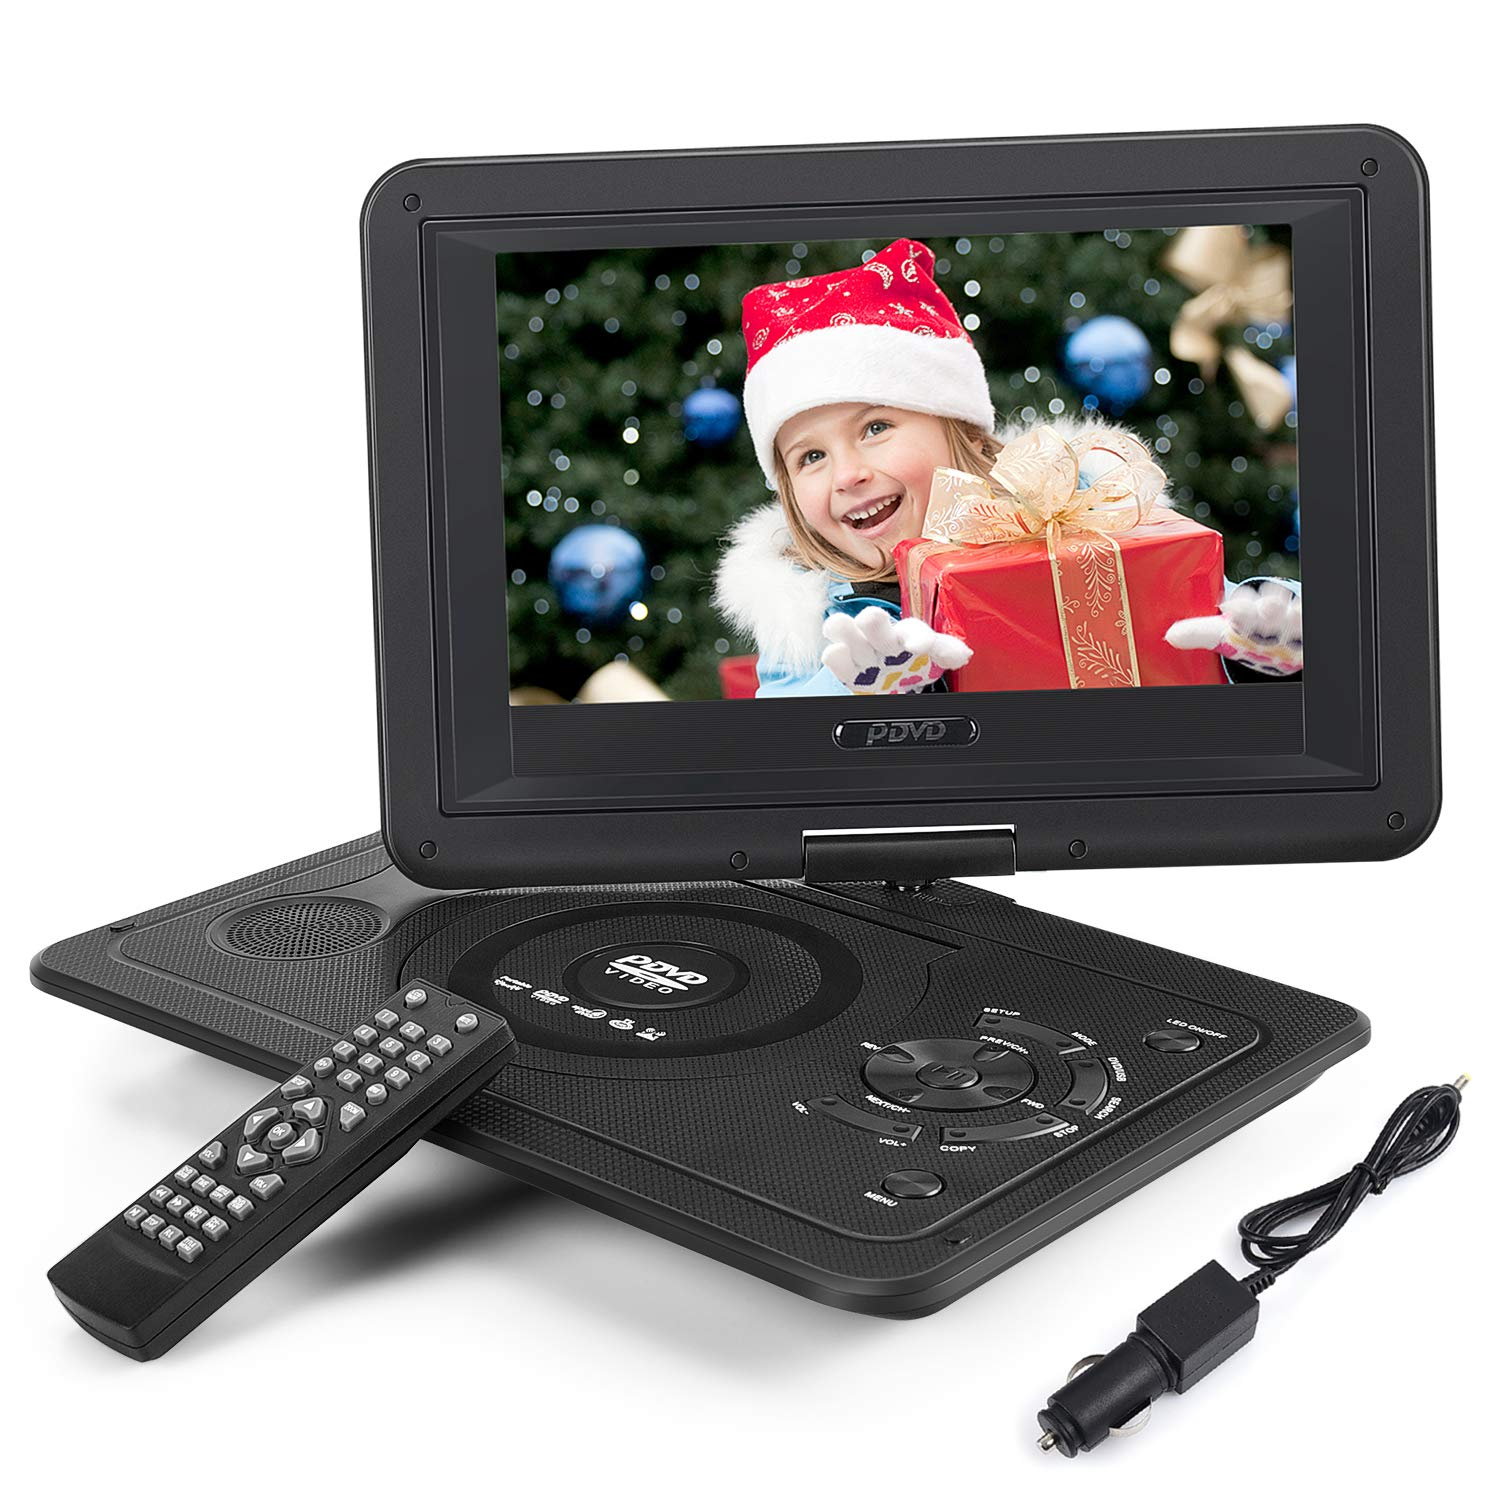 Whew Portable DVD Player for Kids Car Travel, 10.1'' Swivel Screen, 4 Hour Rechargeable Battery, Car Charger, Earphone Jack for CD/DVD Region Free